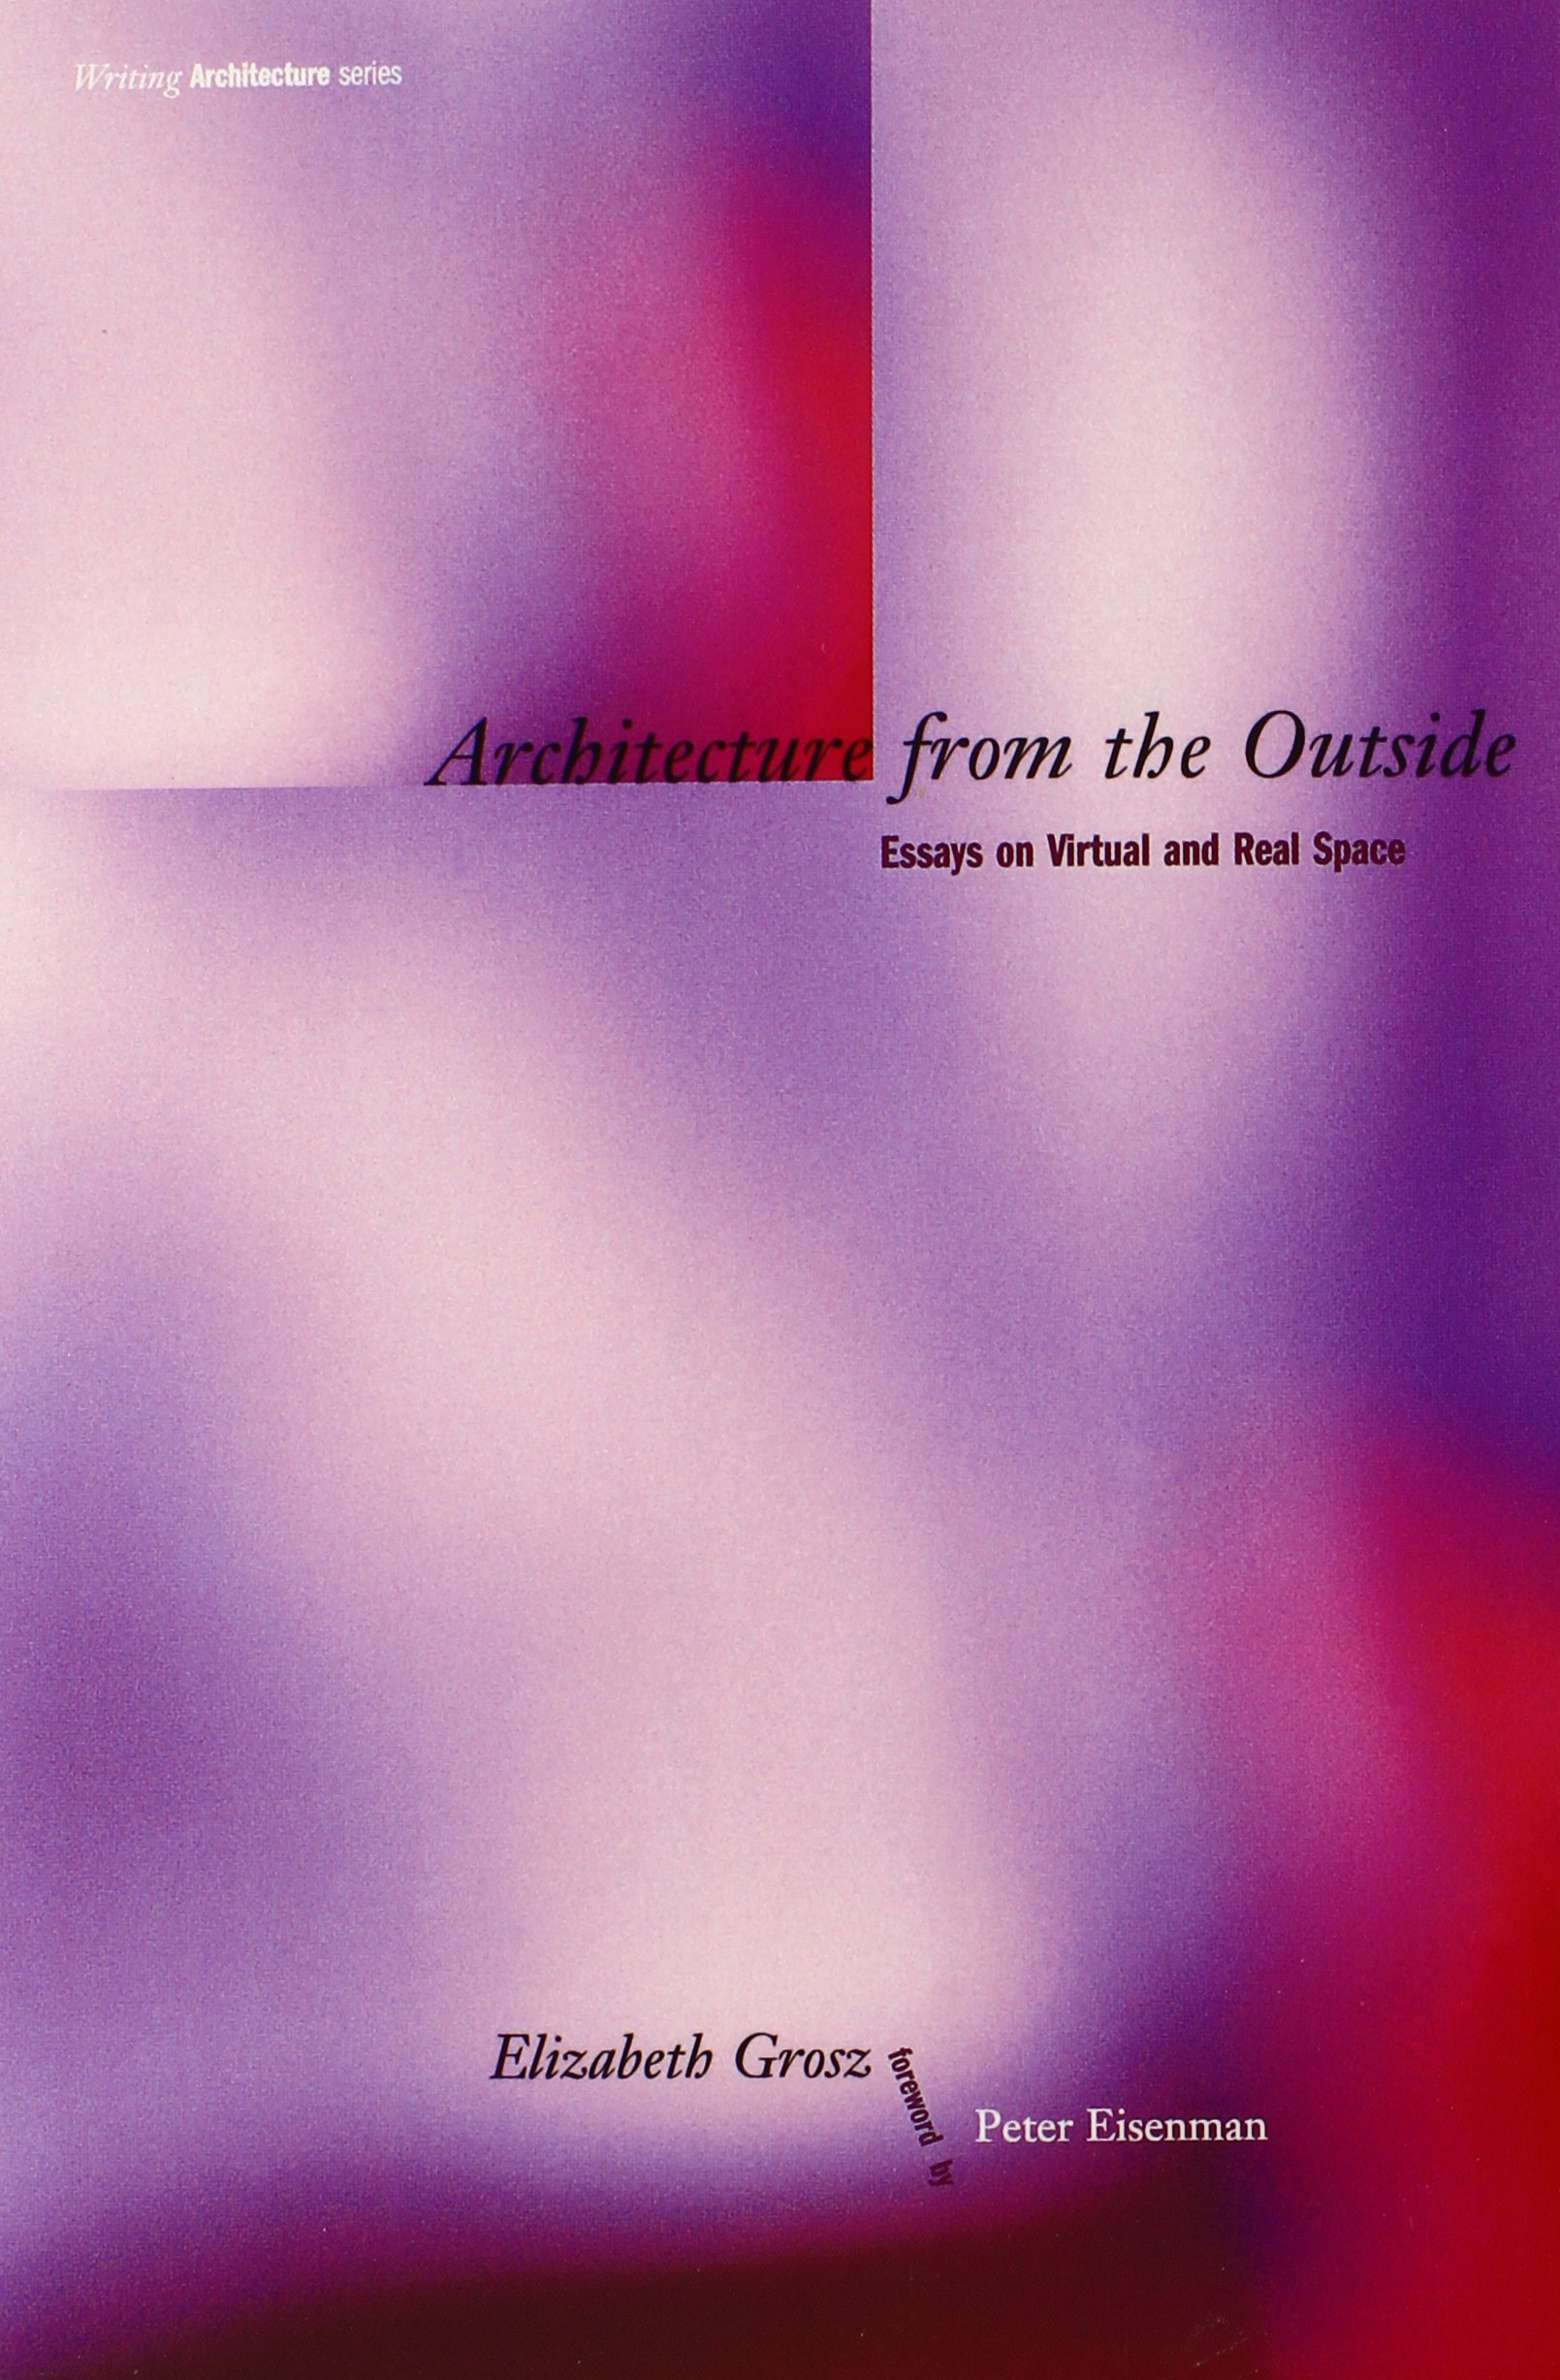 architecture from the outside essays on virtual and real space architecture from the outside essays on virtual and real space writing architecture amazon co uk elizabeth grosz 9780262571494 books